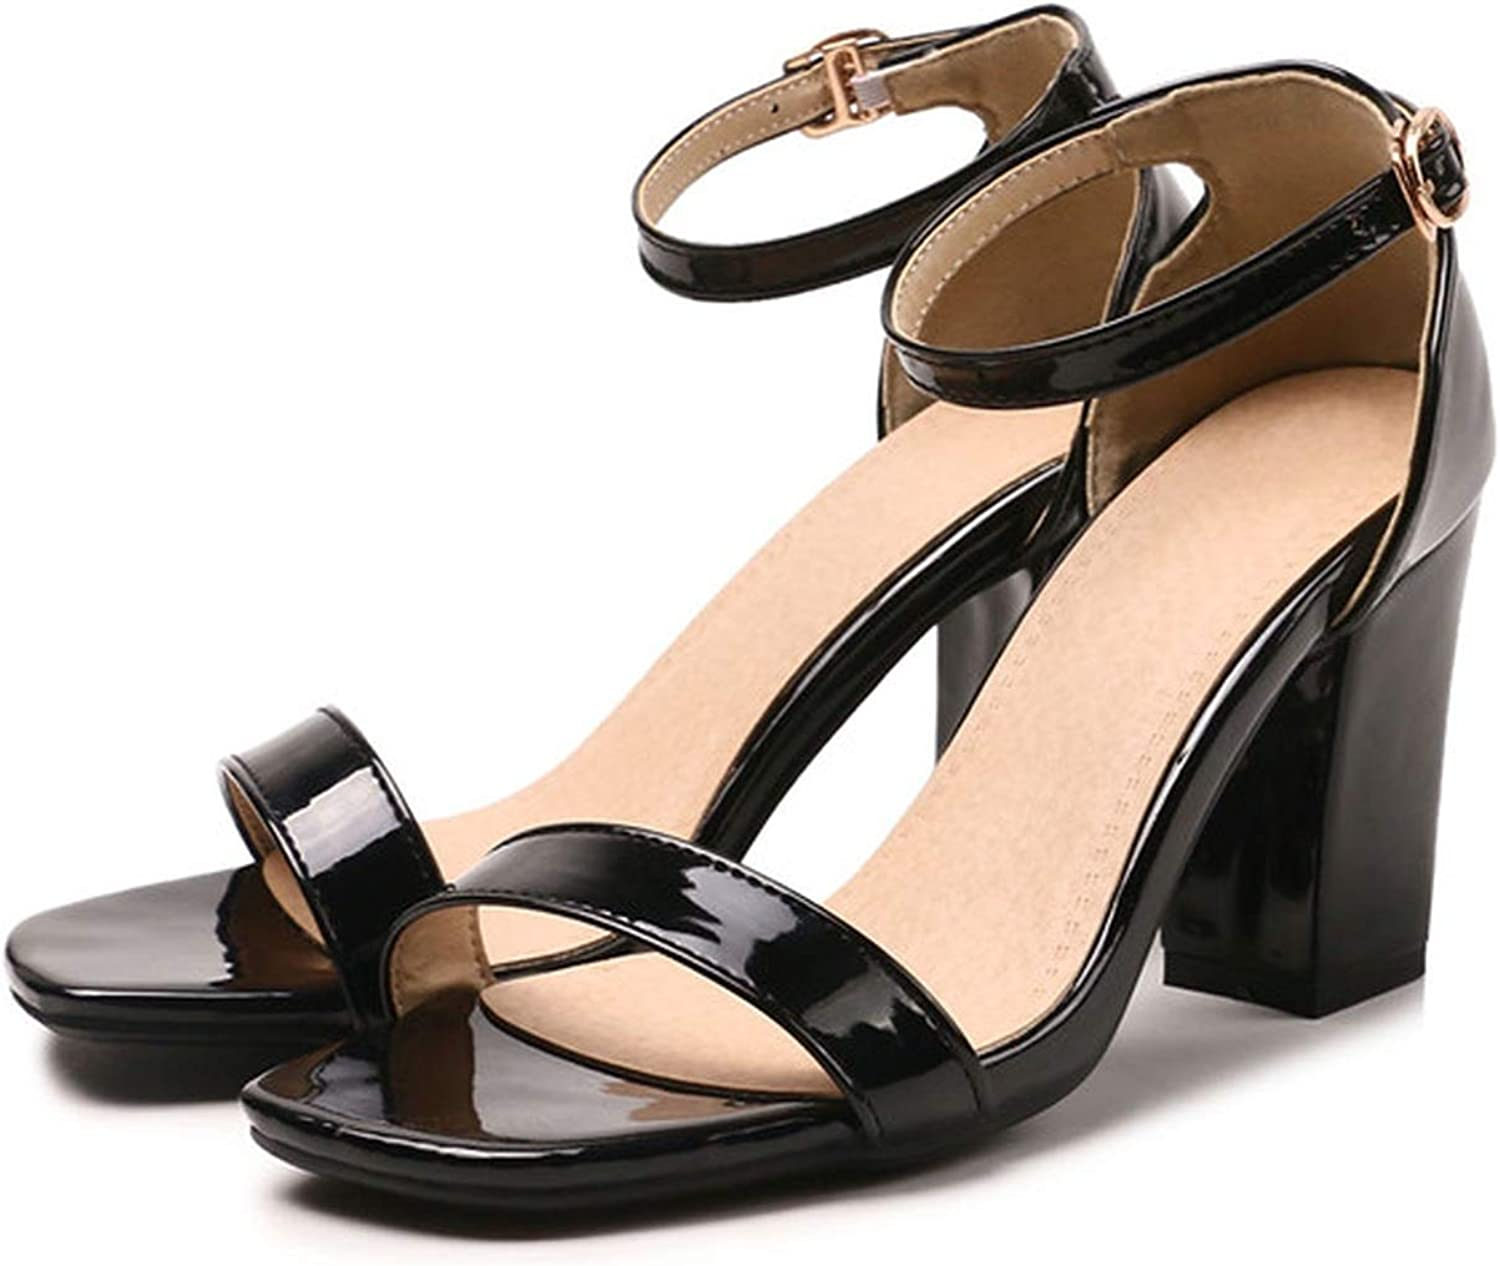 YuJi Sandals Patent Leather Thick Heel Red Bridal shoes Buckle High Heel Ankle Strap Sandals,Black,4